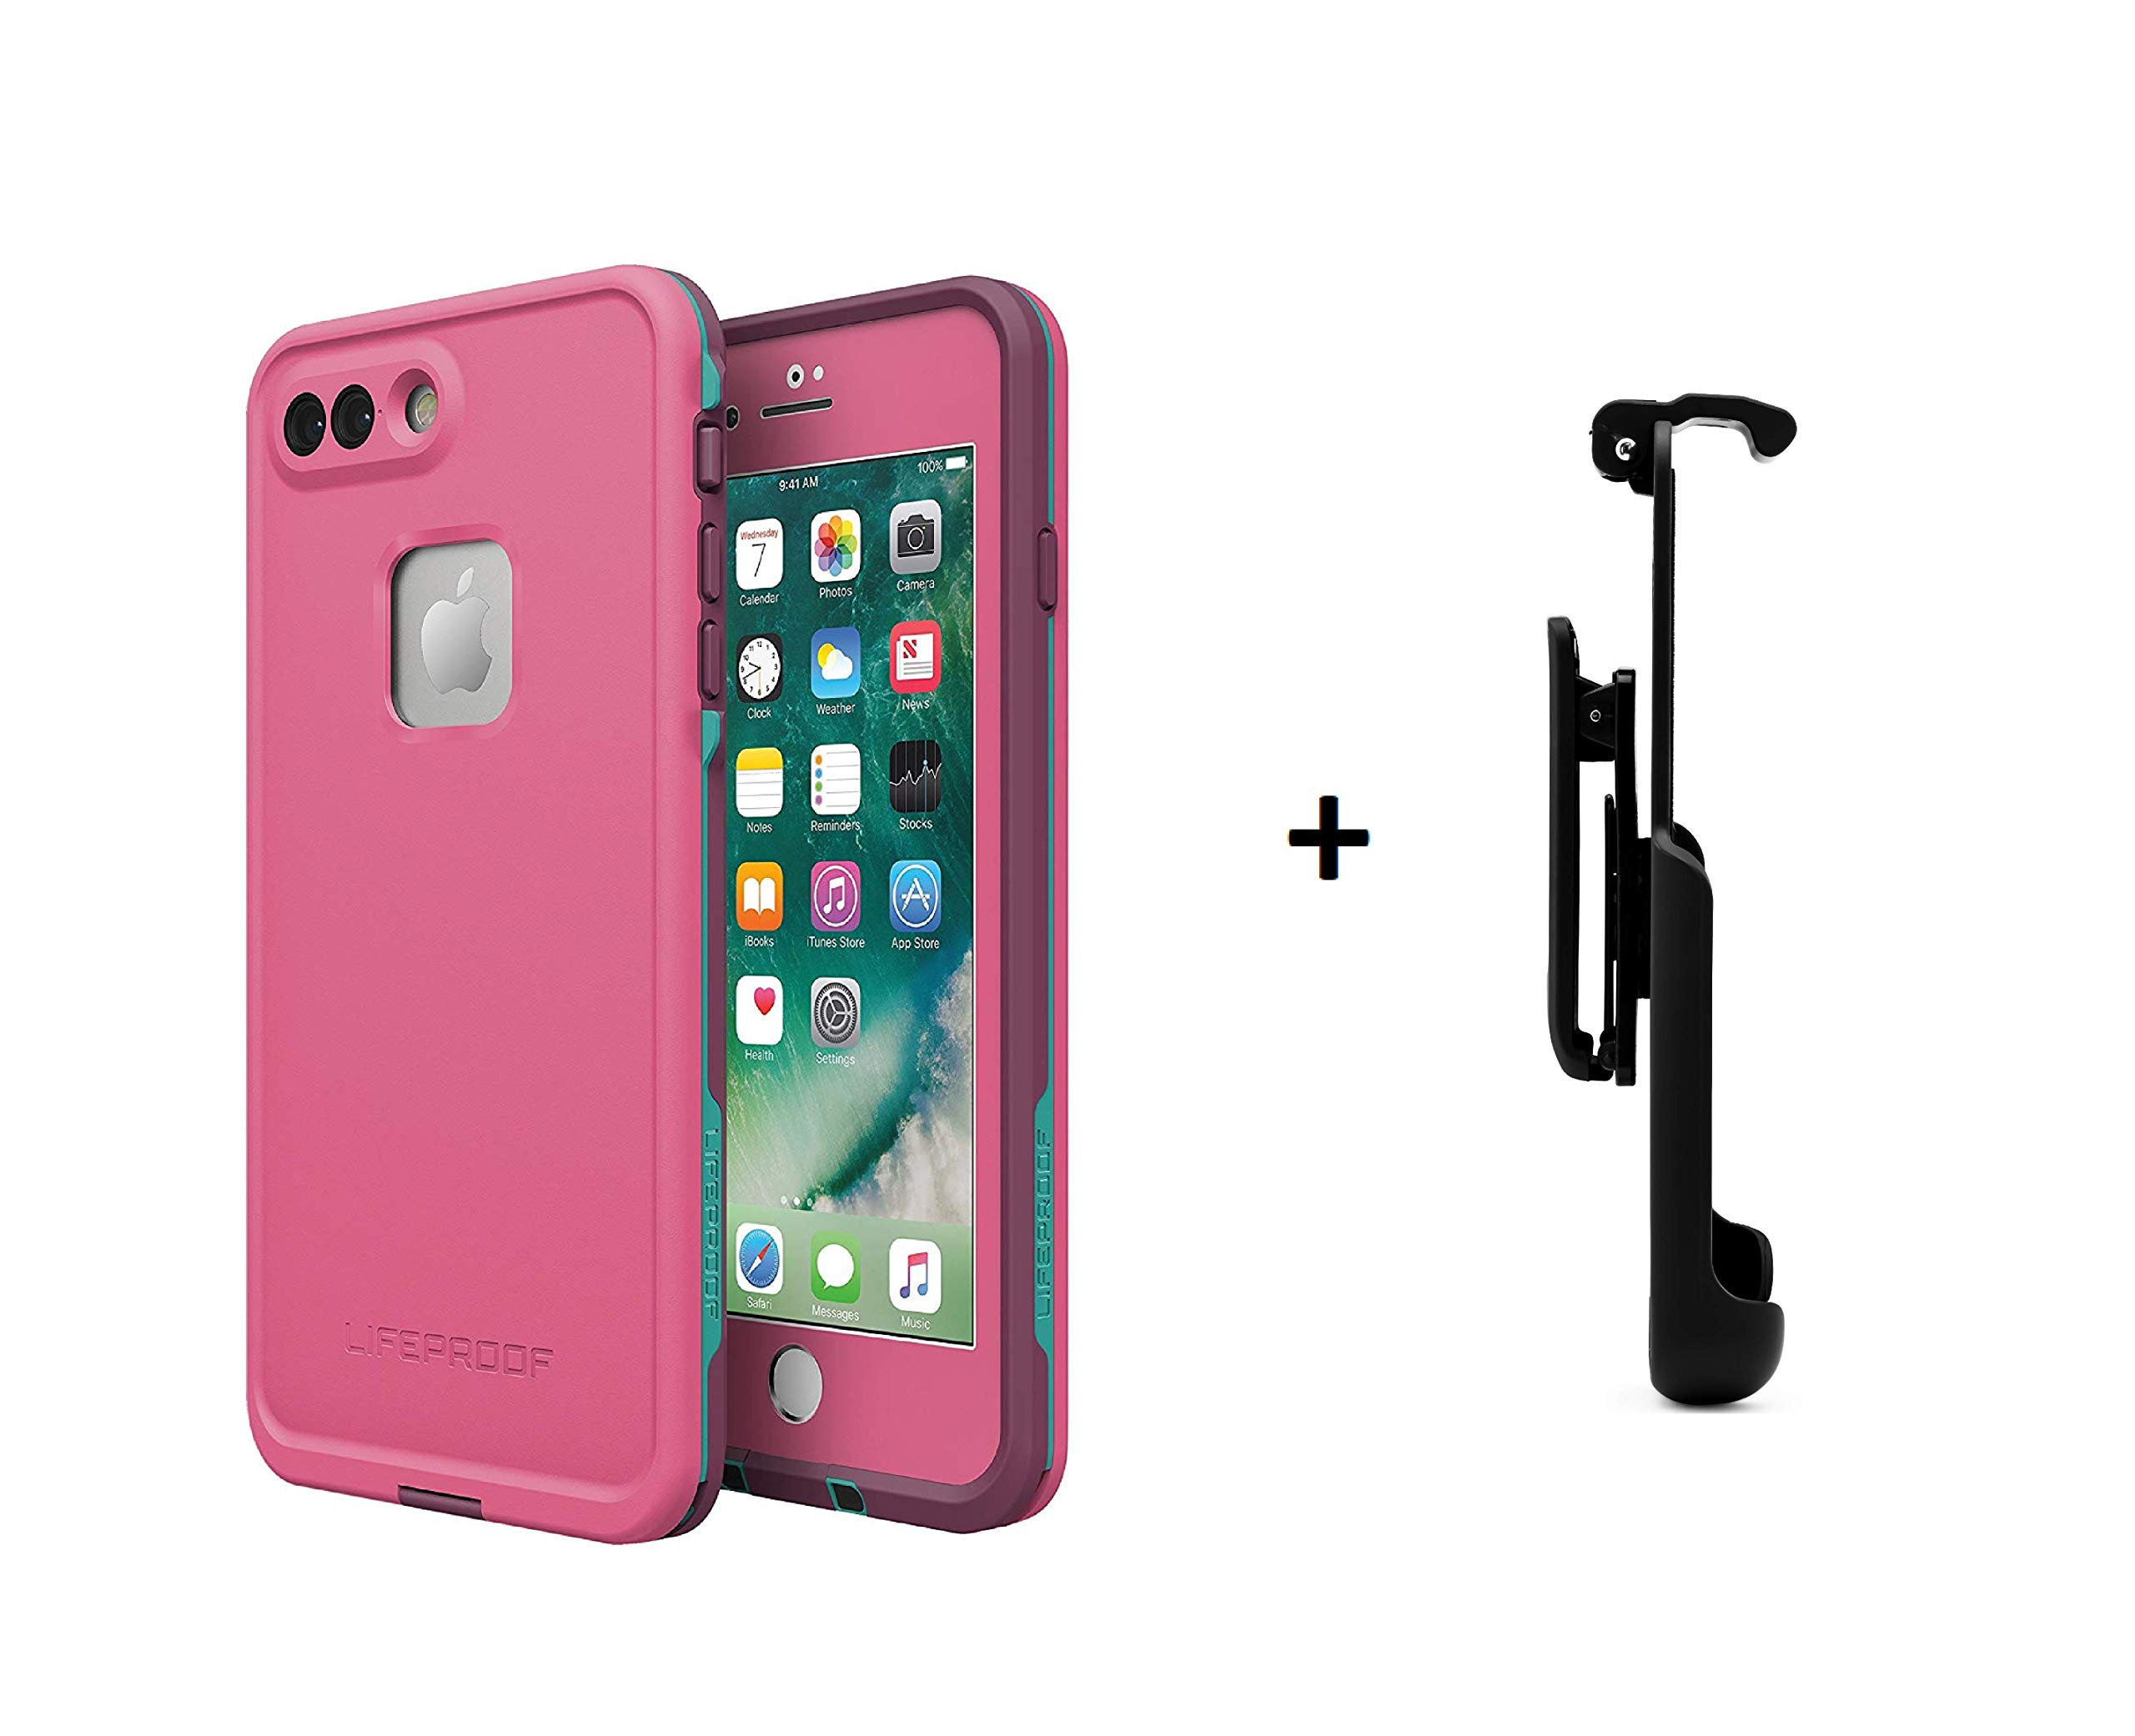 Lifeproof FRĒ Series Waterproof Case for iPhone 8 Plus & 7 Plus (ONLY) - Retail Packaging (Twilight Edge + Belt Clip)